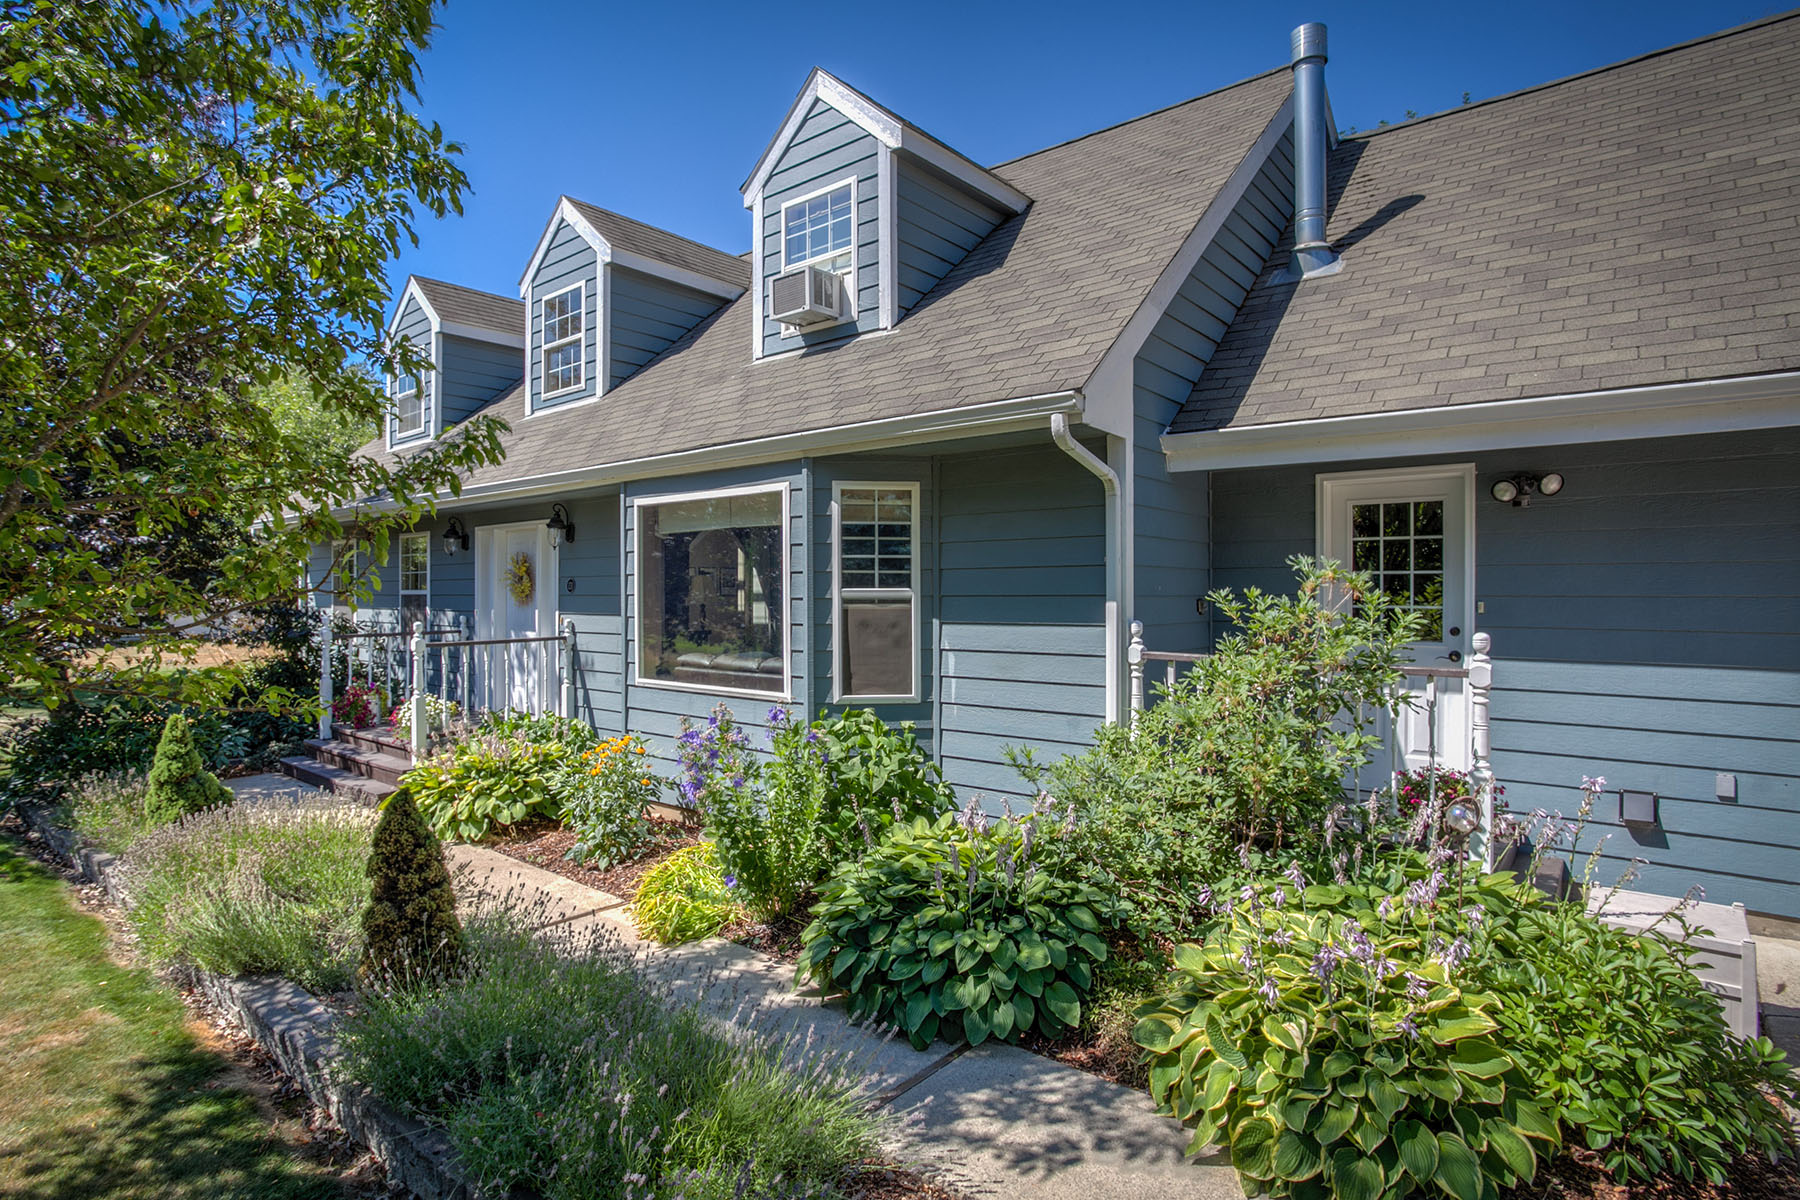 Single Family Home for Sale at Community Waterfront 131 Ponder Point Sandpoint, Idaho 83864 United States